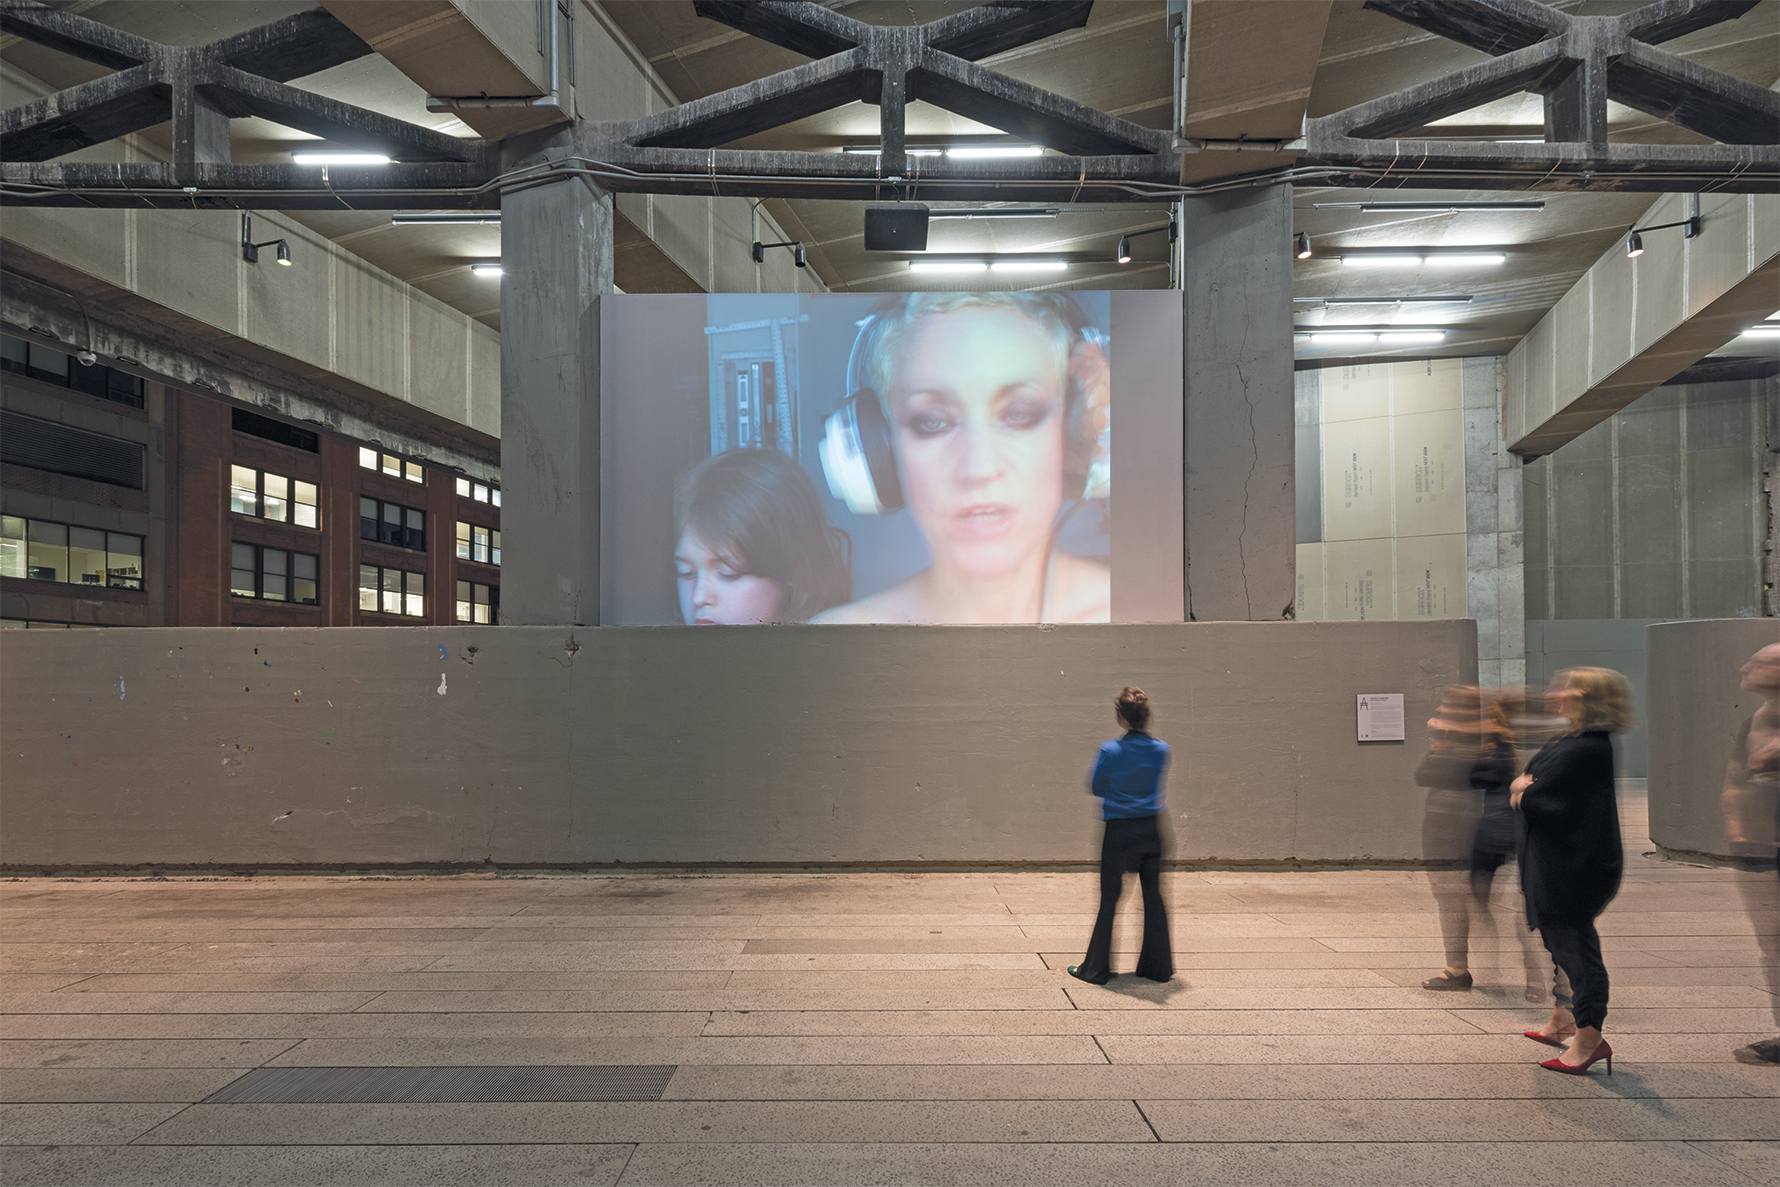 People stopping to watch a video screen that depicts a person wearing headphones